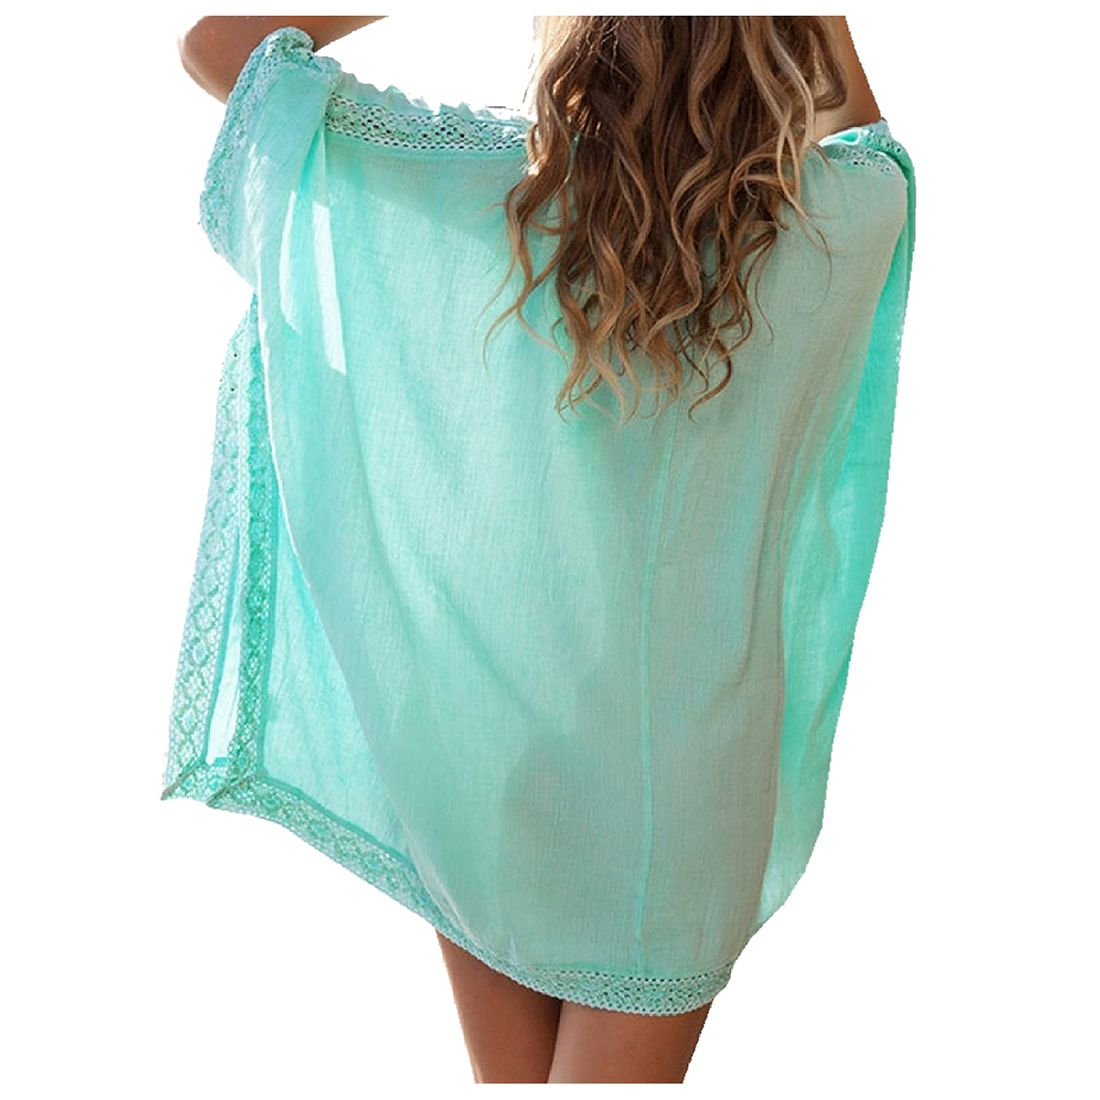 Womens Solid Oversized Beach Cover Up Swimsuit Bathing Suit Beach Dress, Green